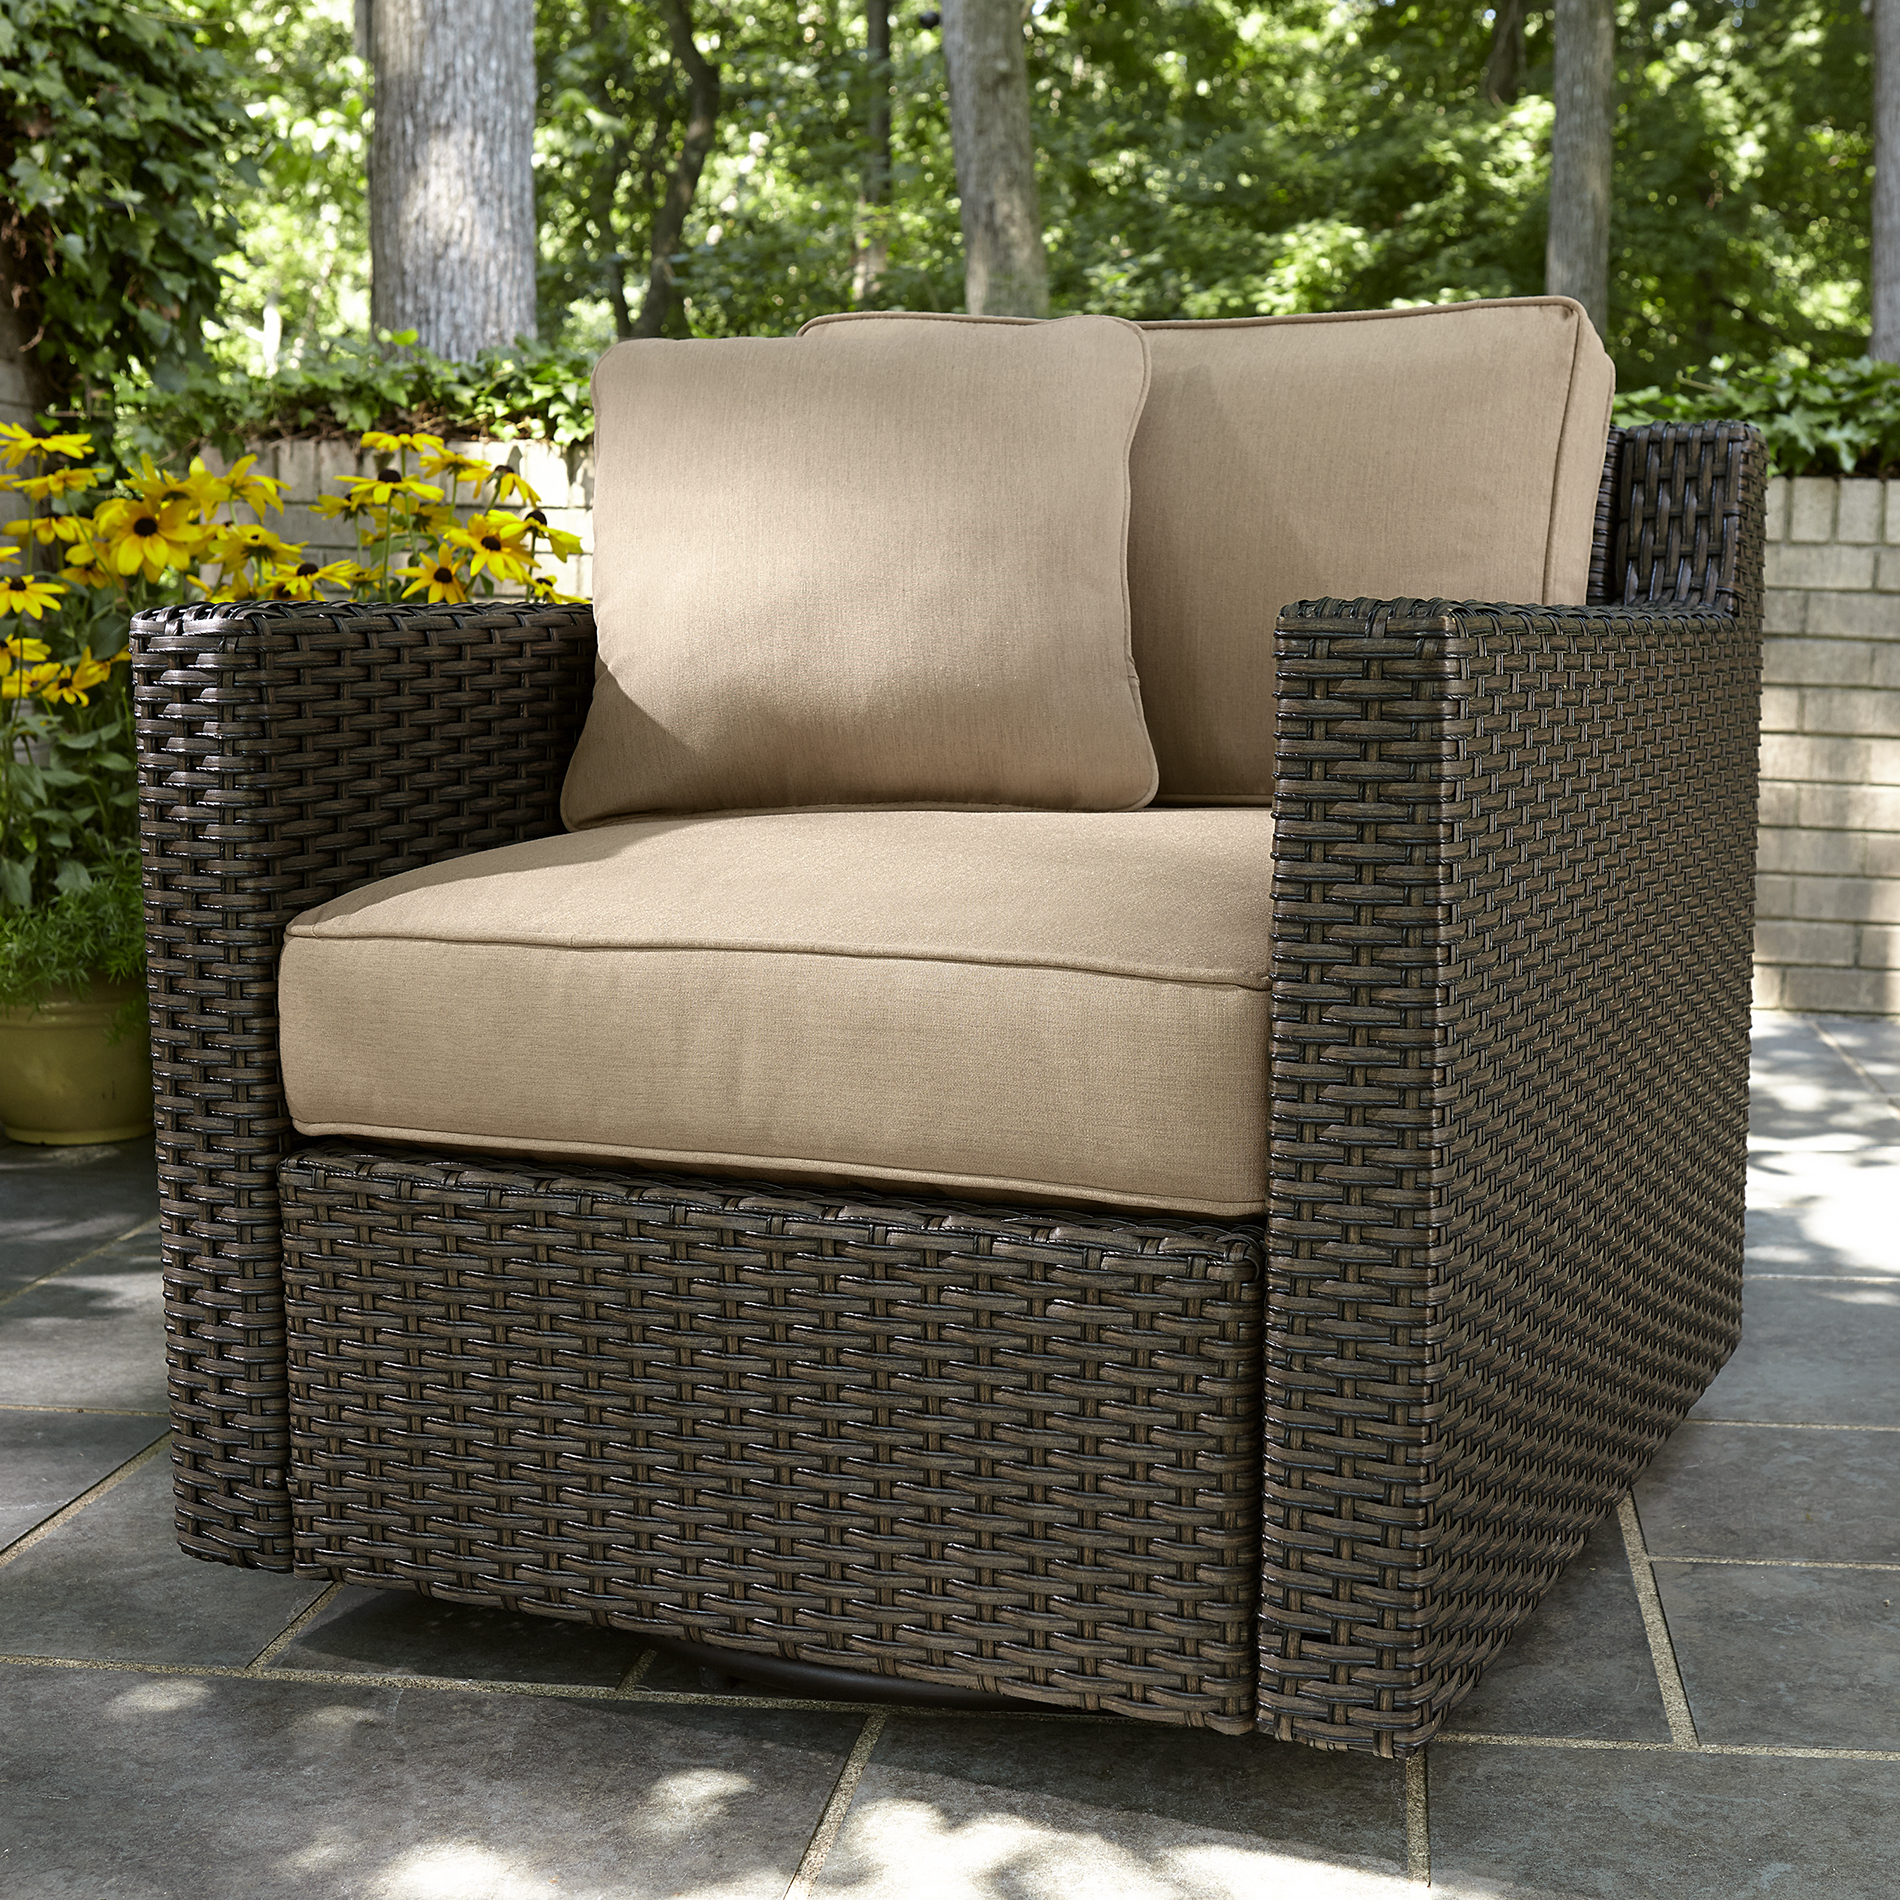 Agio International Moore Haven Woven Glider- Neutral